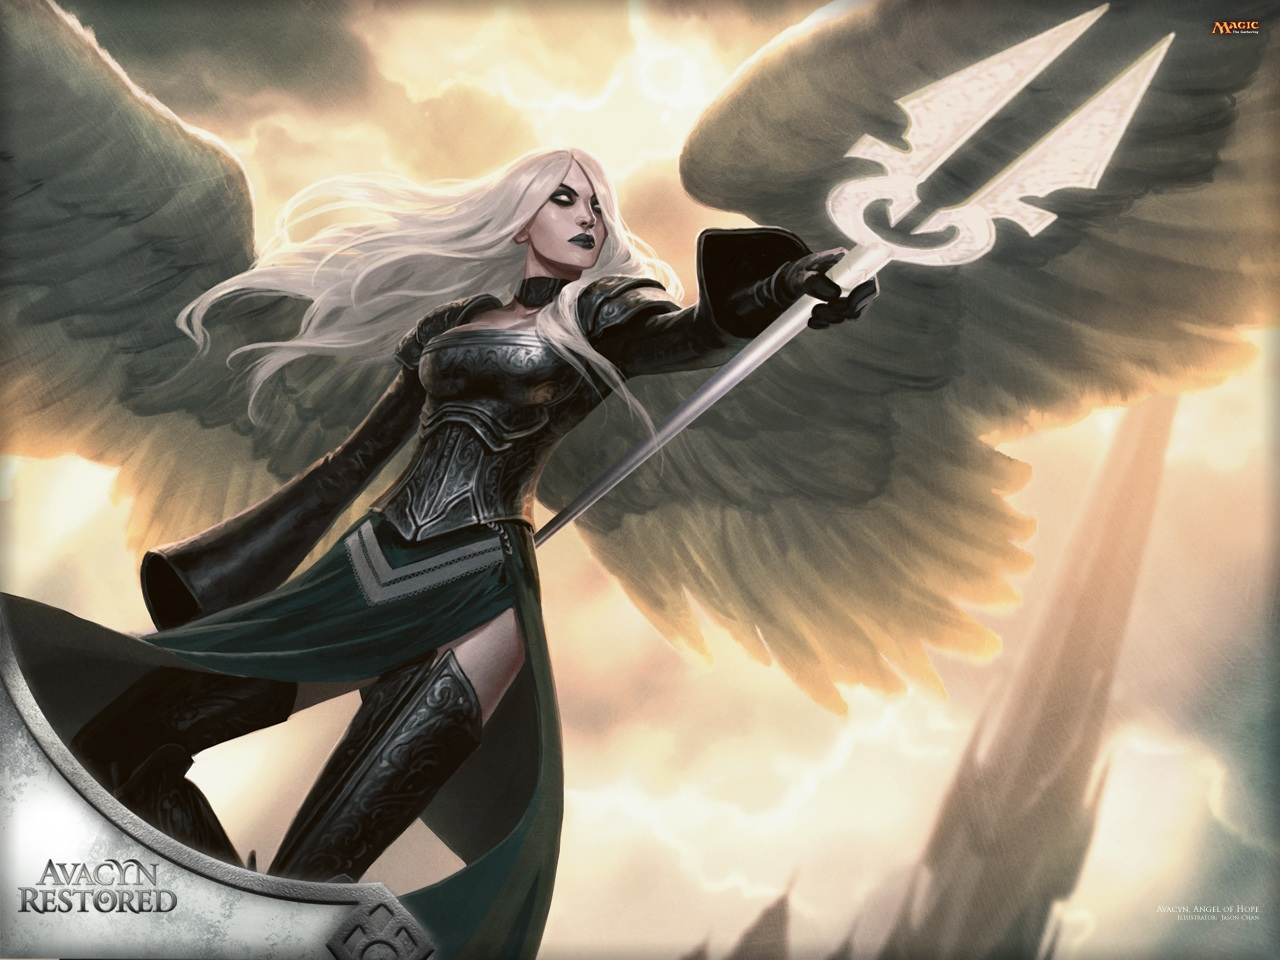 Magic the Gathering images Avacyn HD wallpaper and background photos